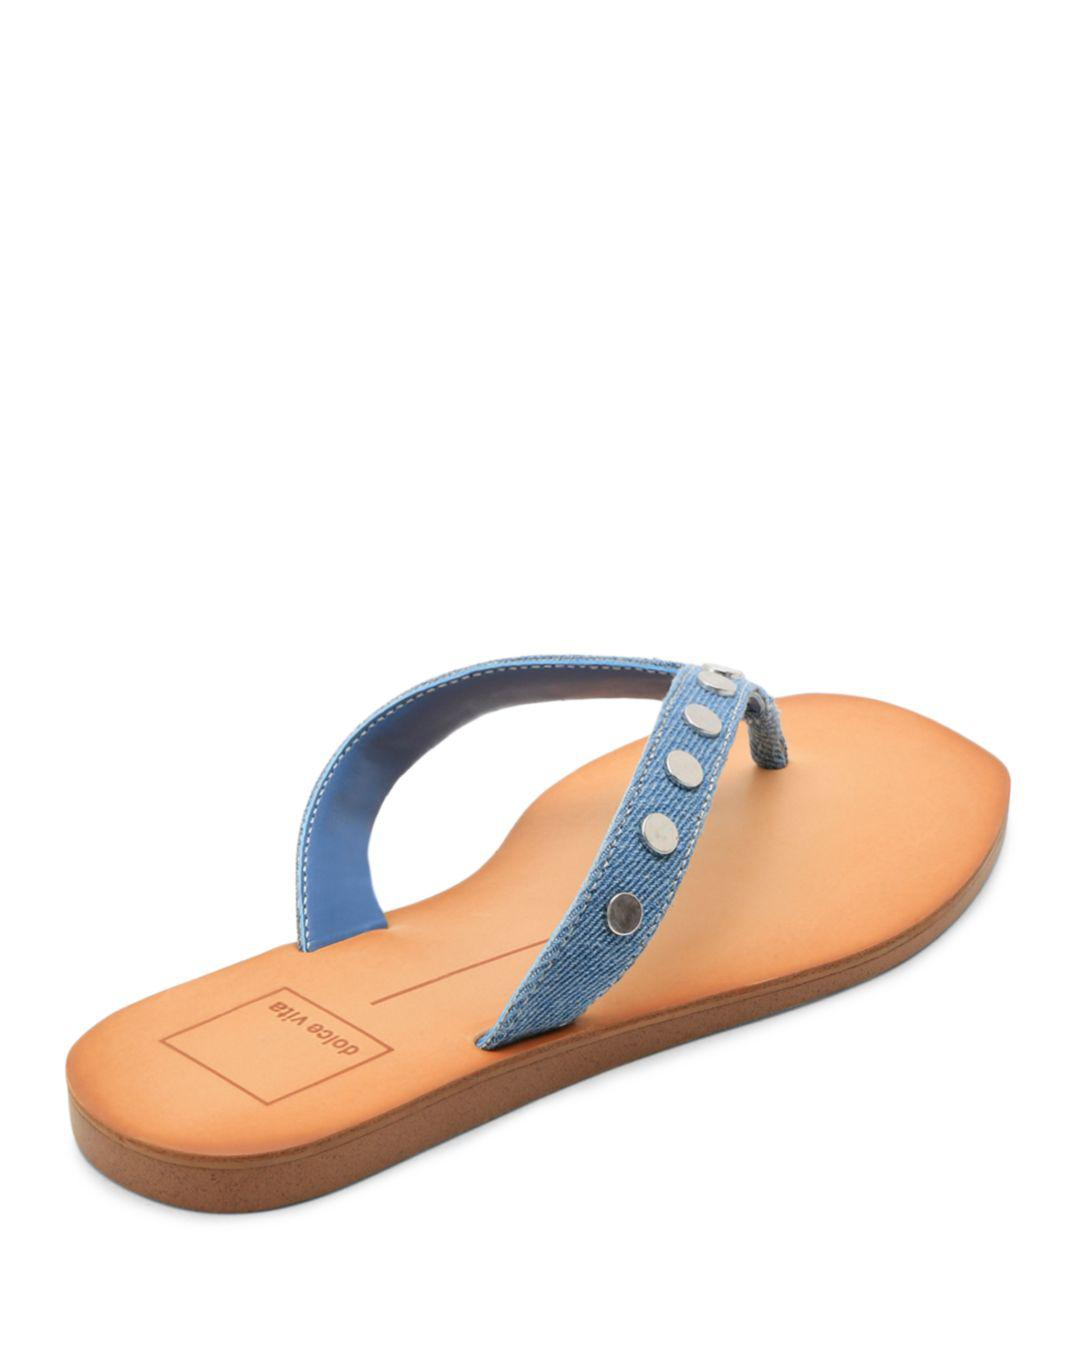 41fa2d4b9dc Lyst - Dolce Vita Women s Clyde Studded Denim Thong Sandals in Blue